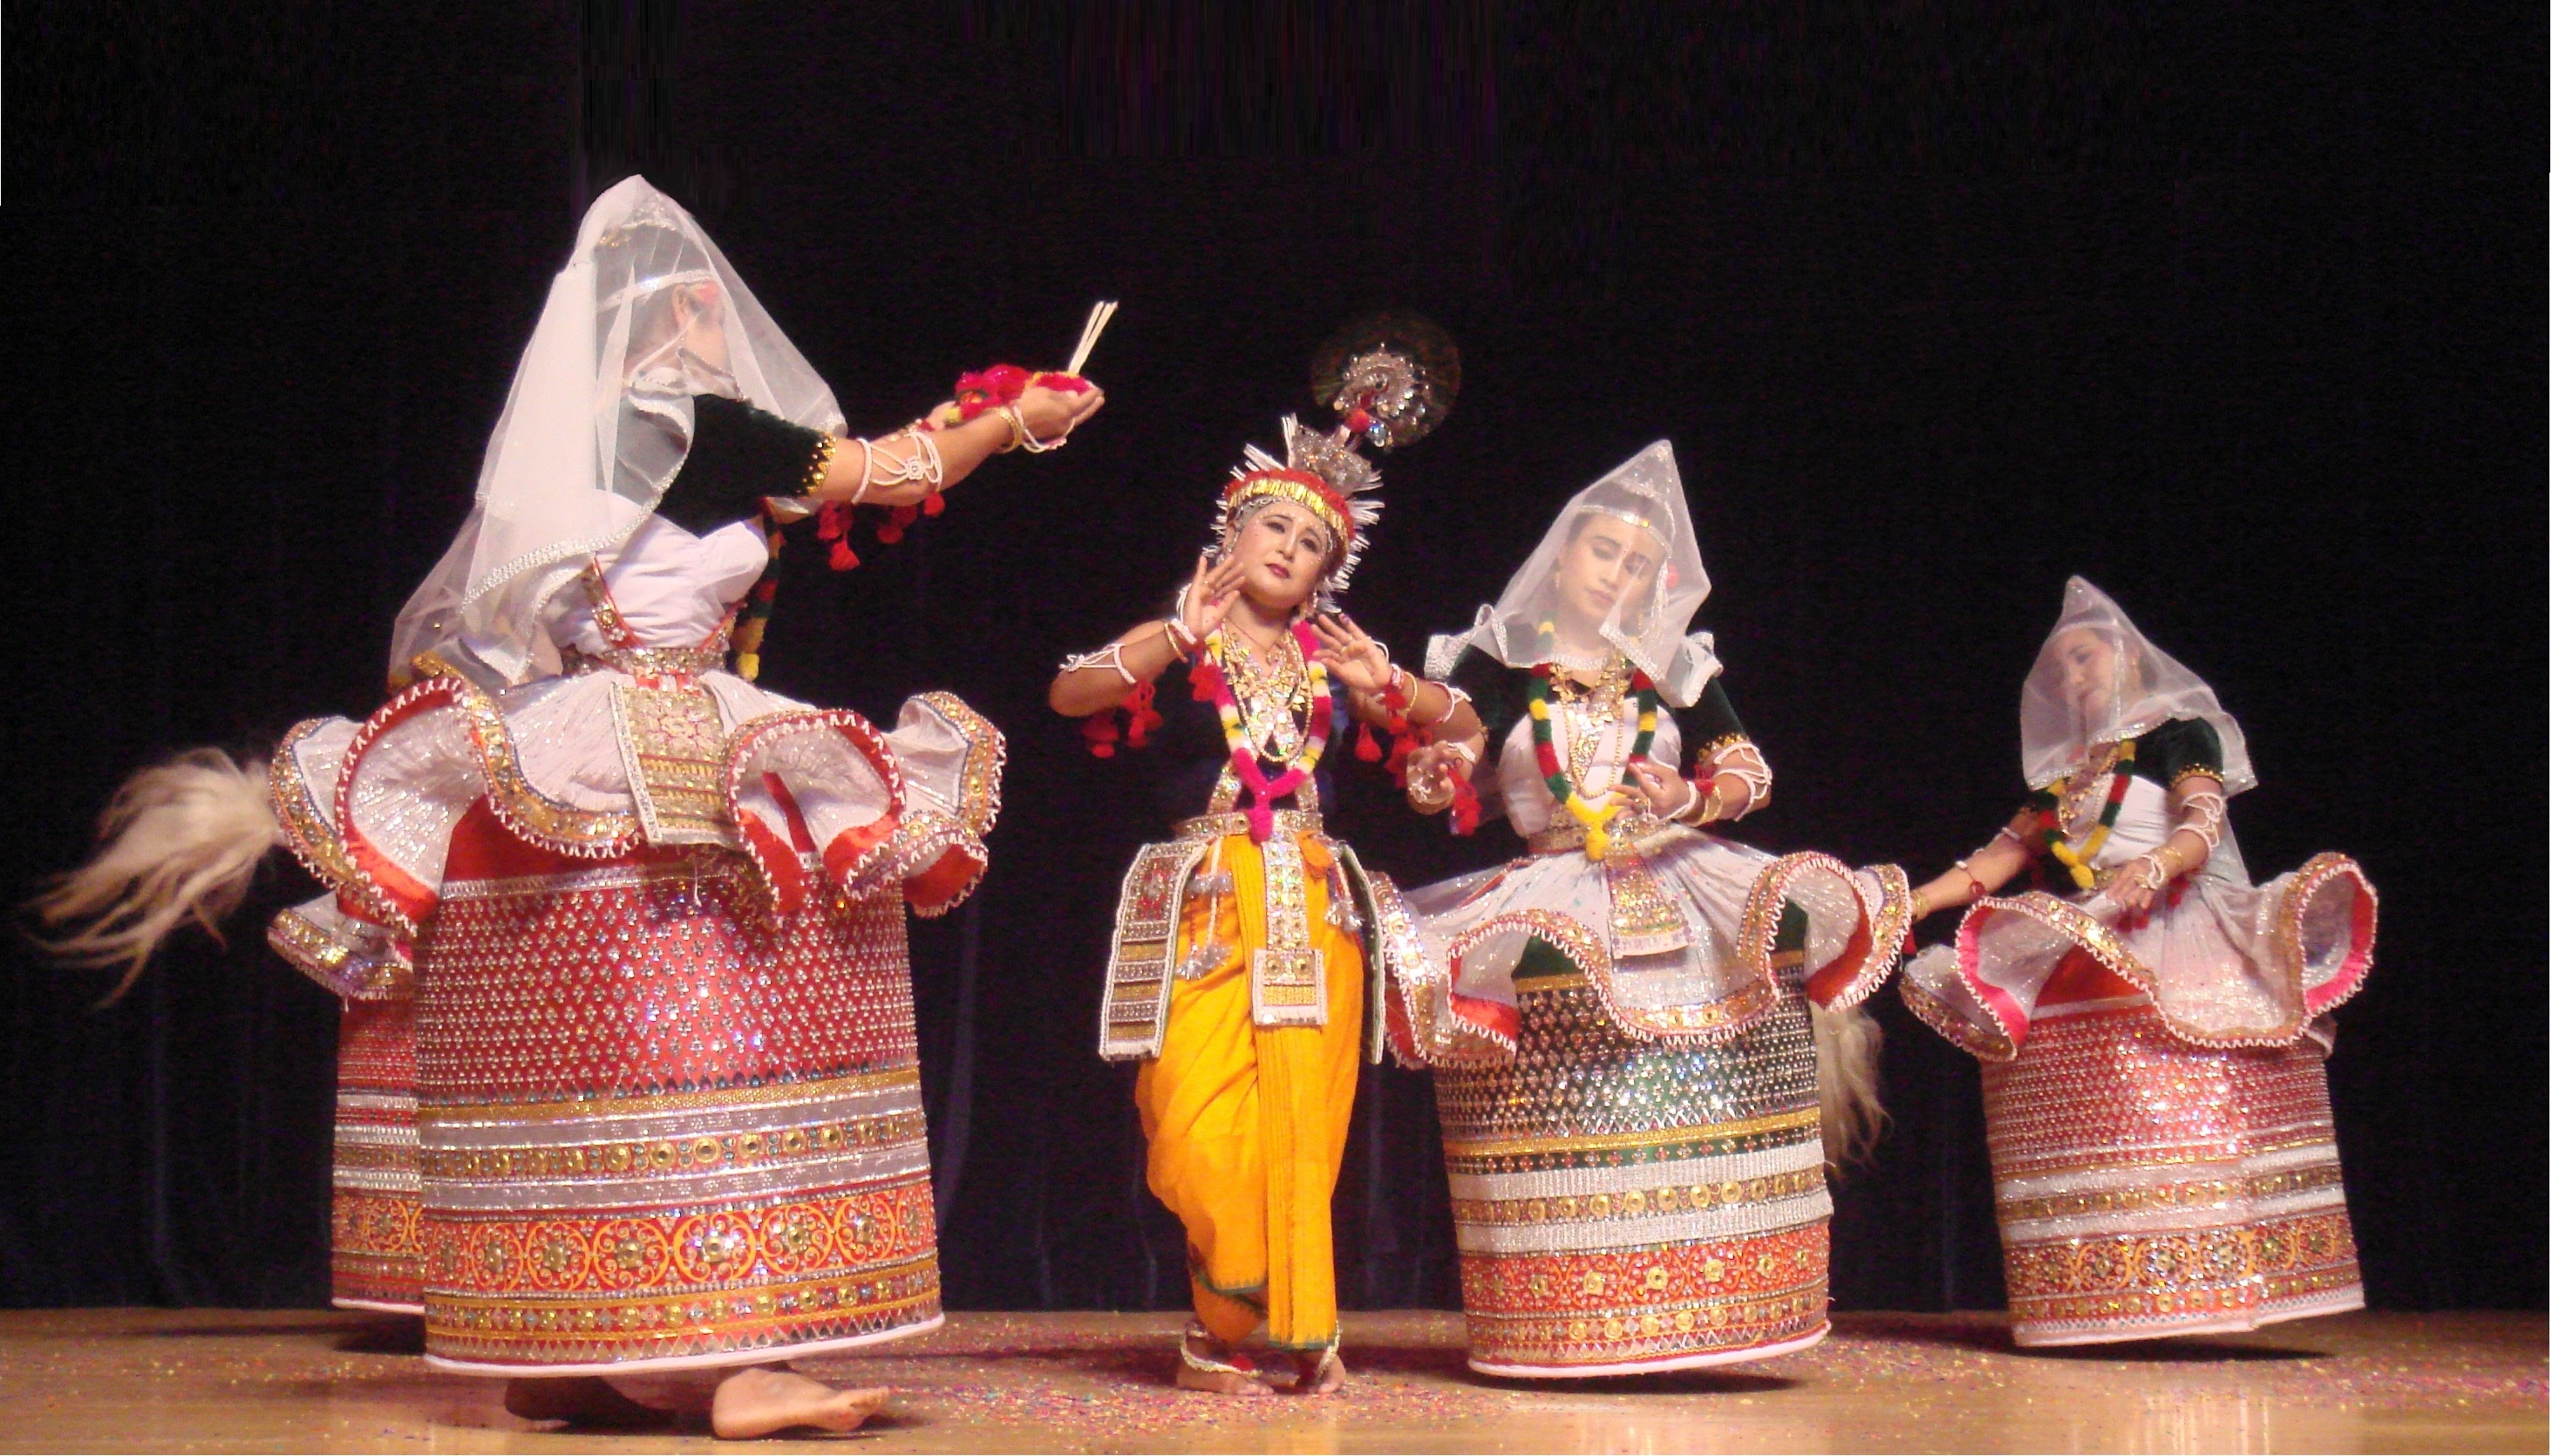 Dance style in Manipur